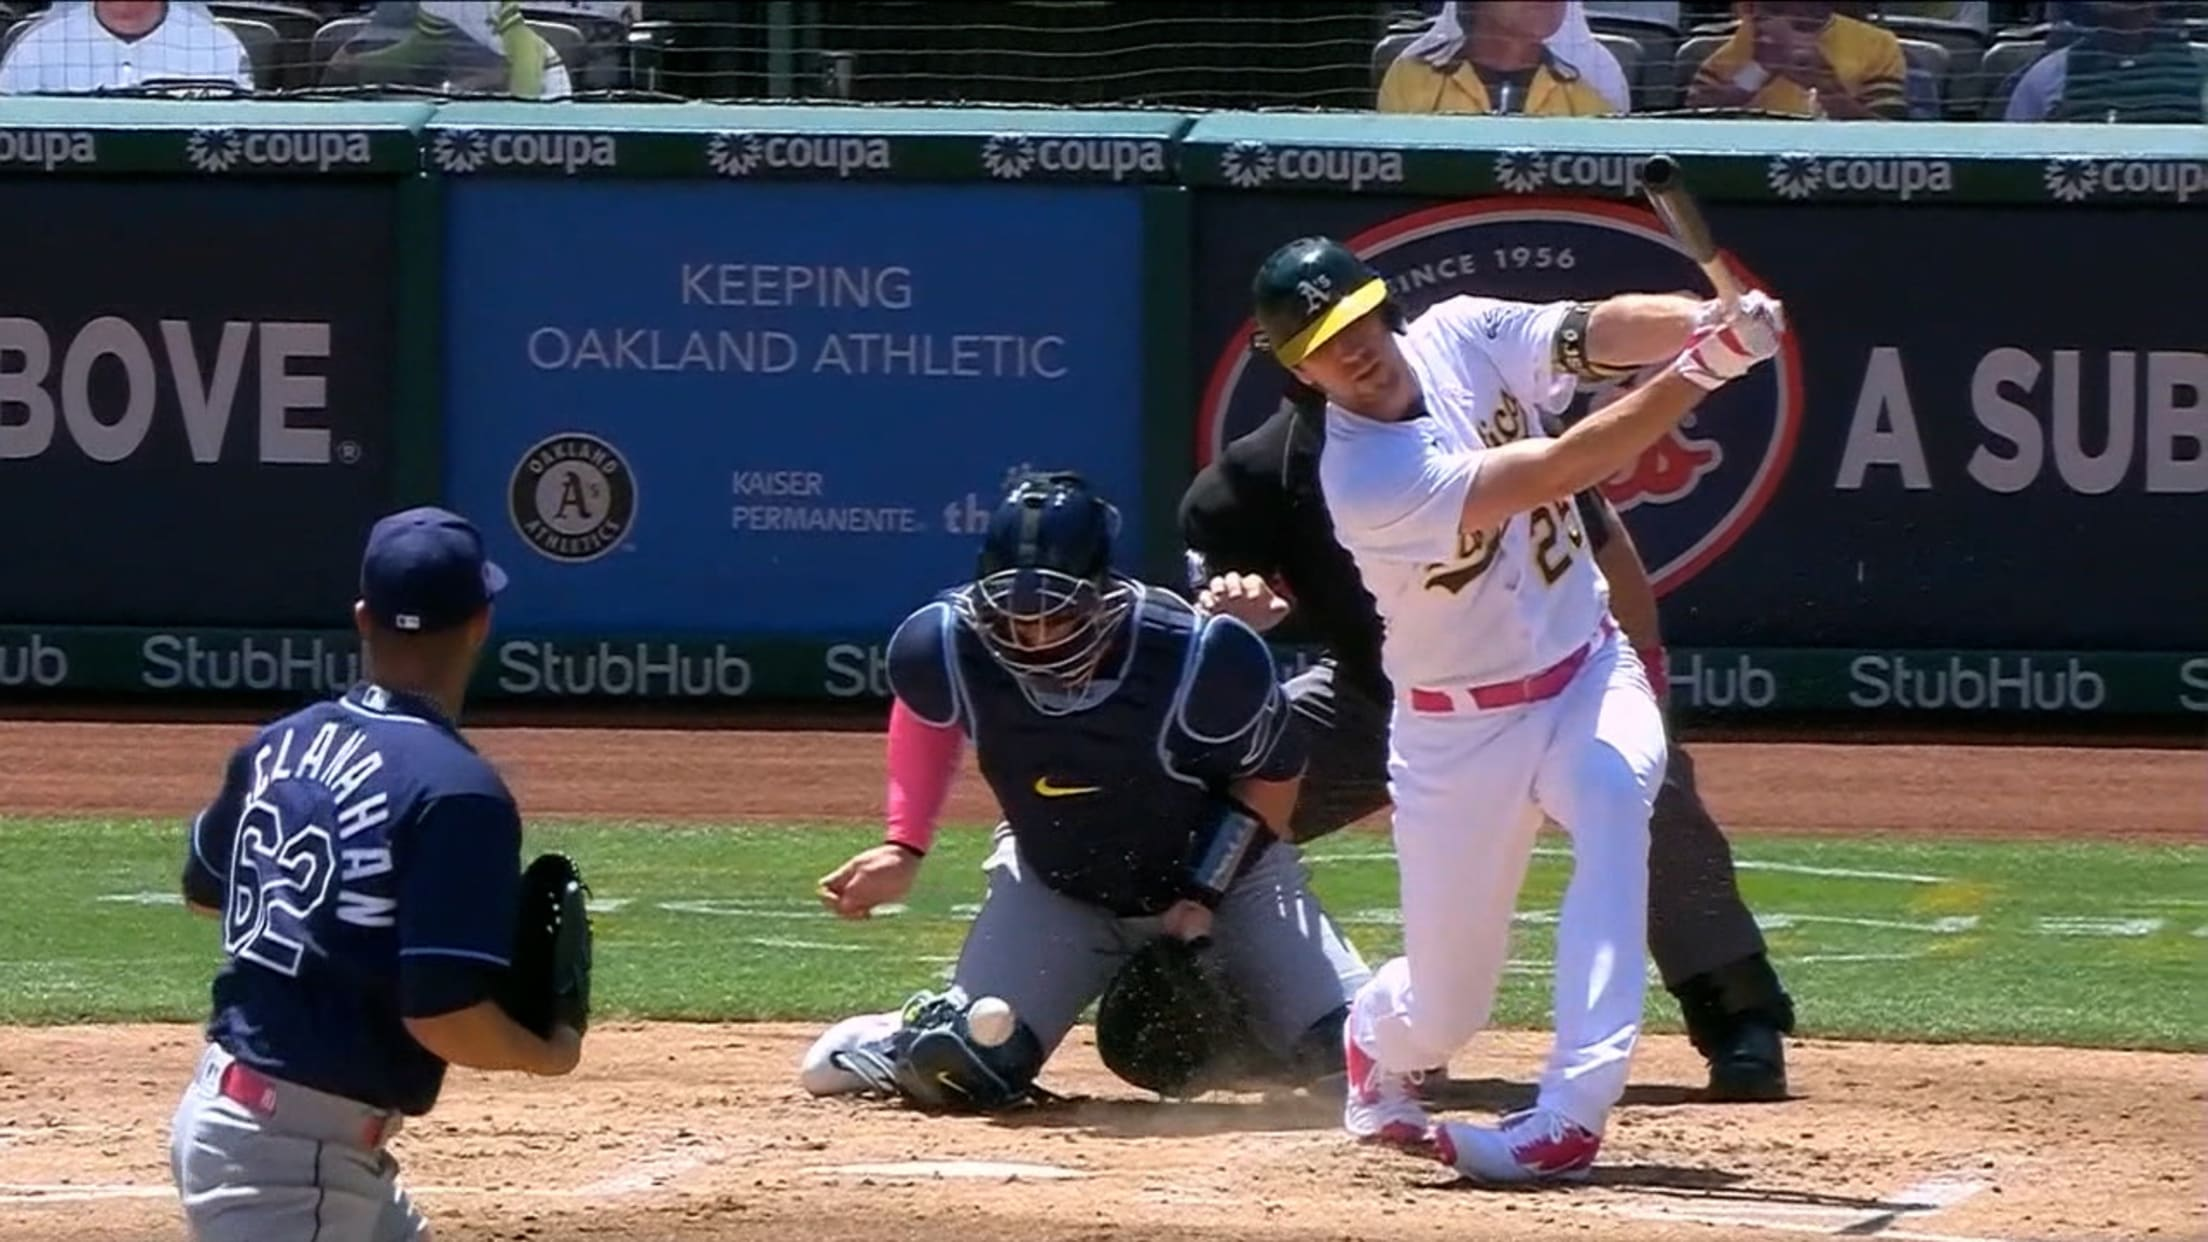 McClanahan K's Piscotty